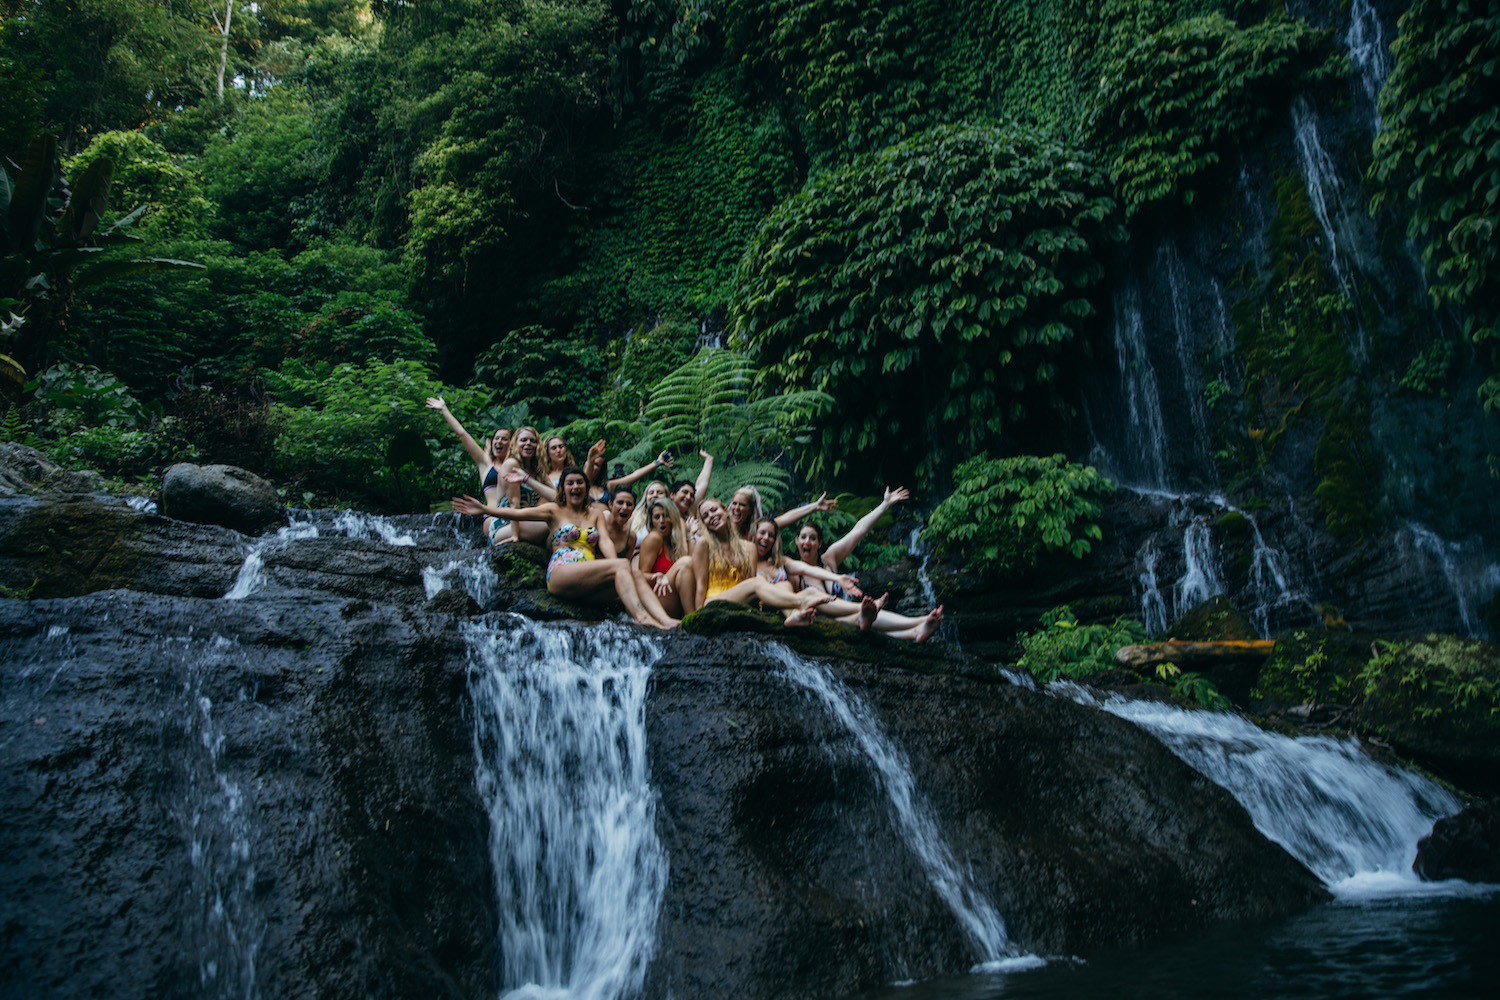 LimitLes in Bali Banyumala Twin Waterfalls